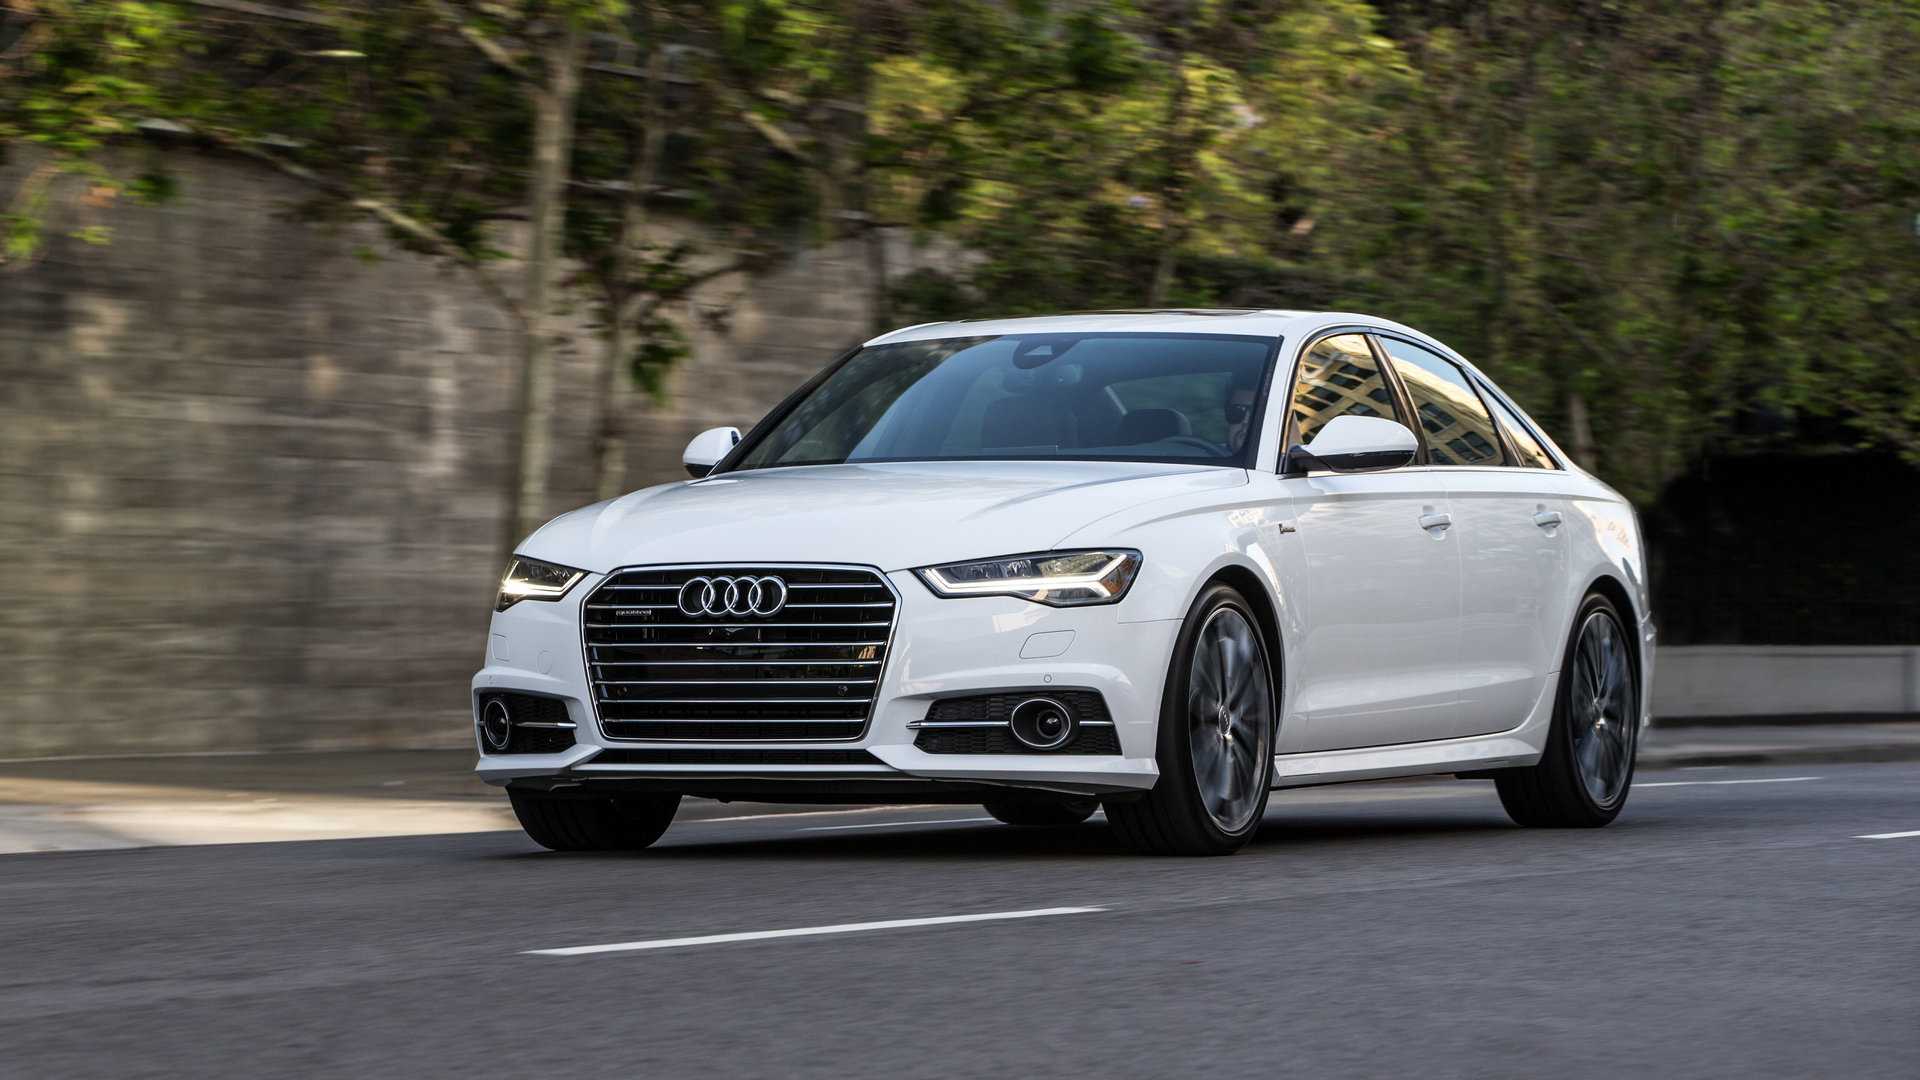 2016 Audi A6 Sedan © Volkswagen Group